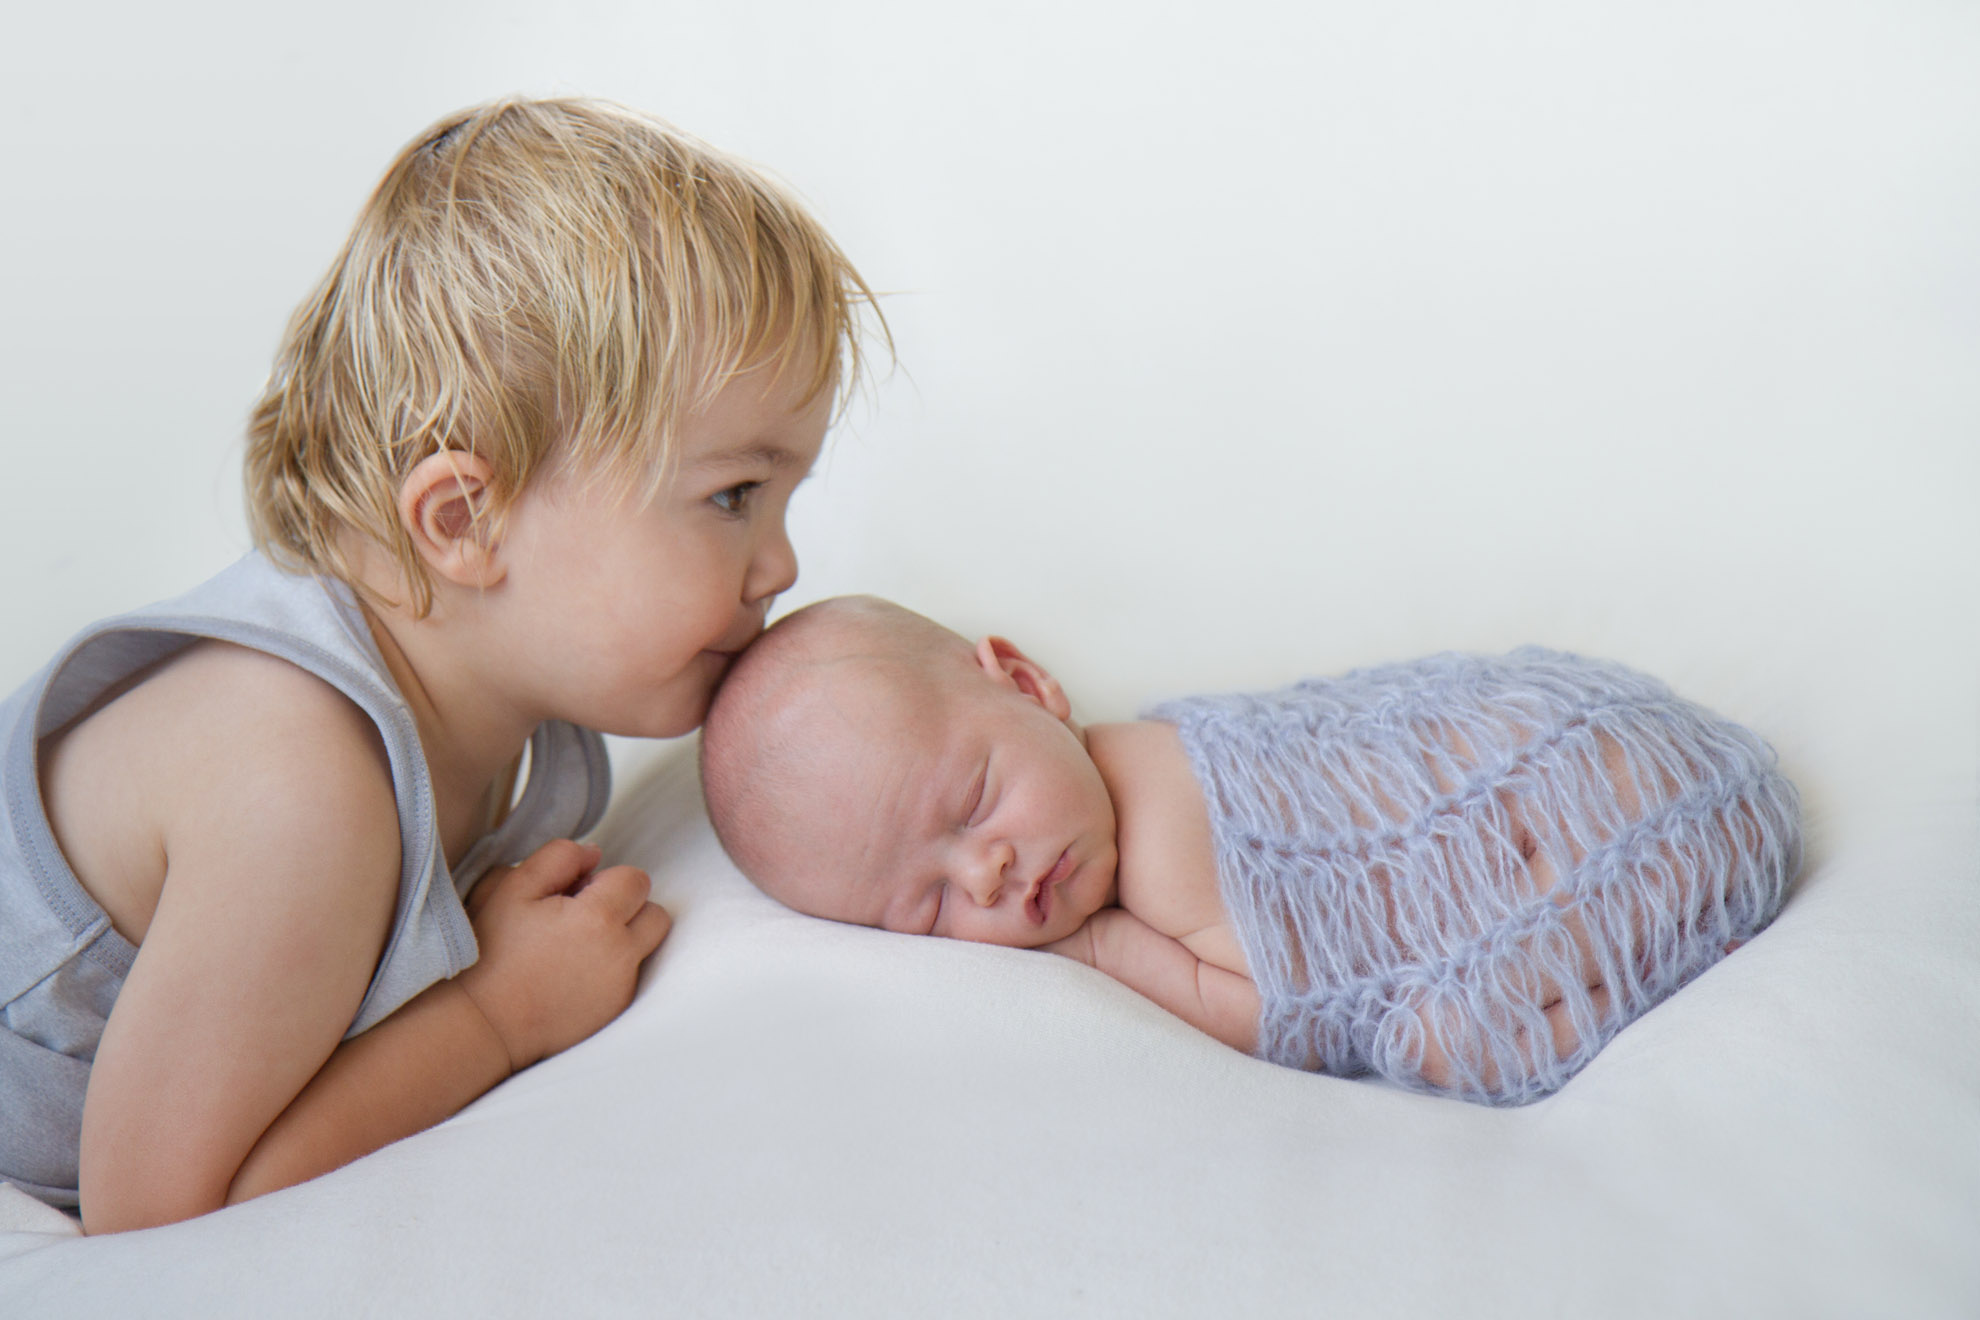 Newborn-and-sibling-photography.jpg